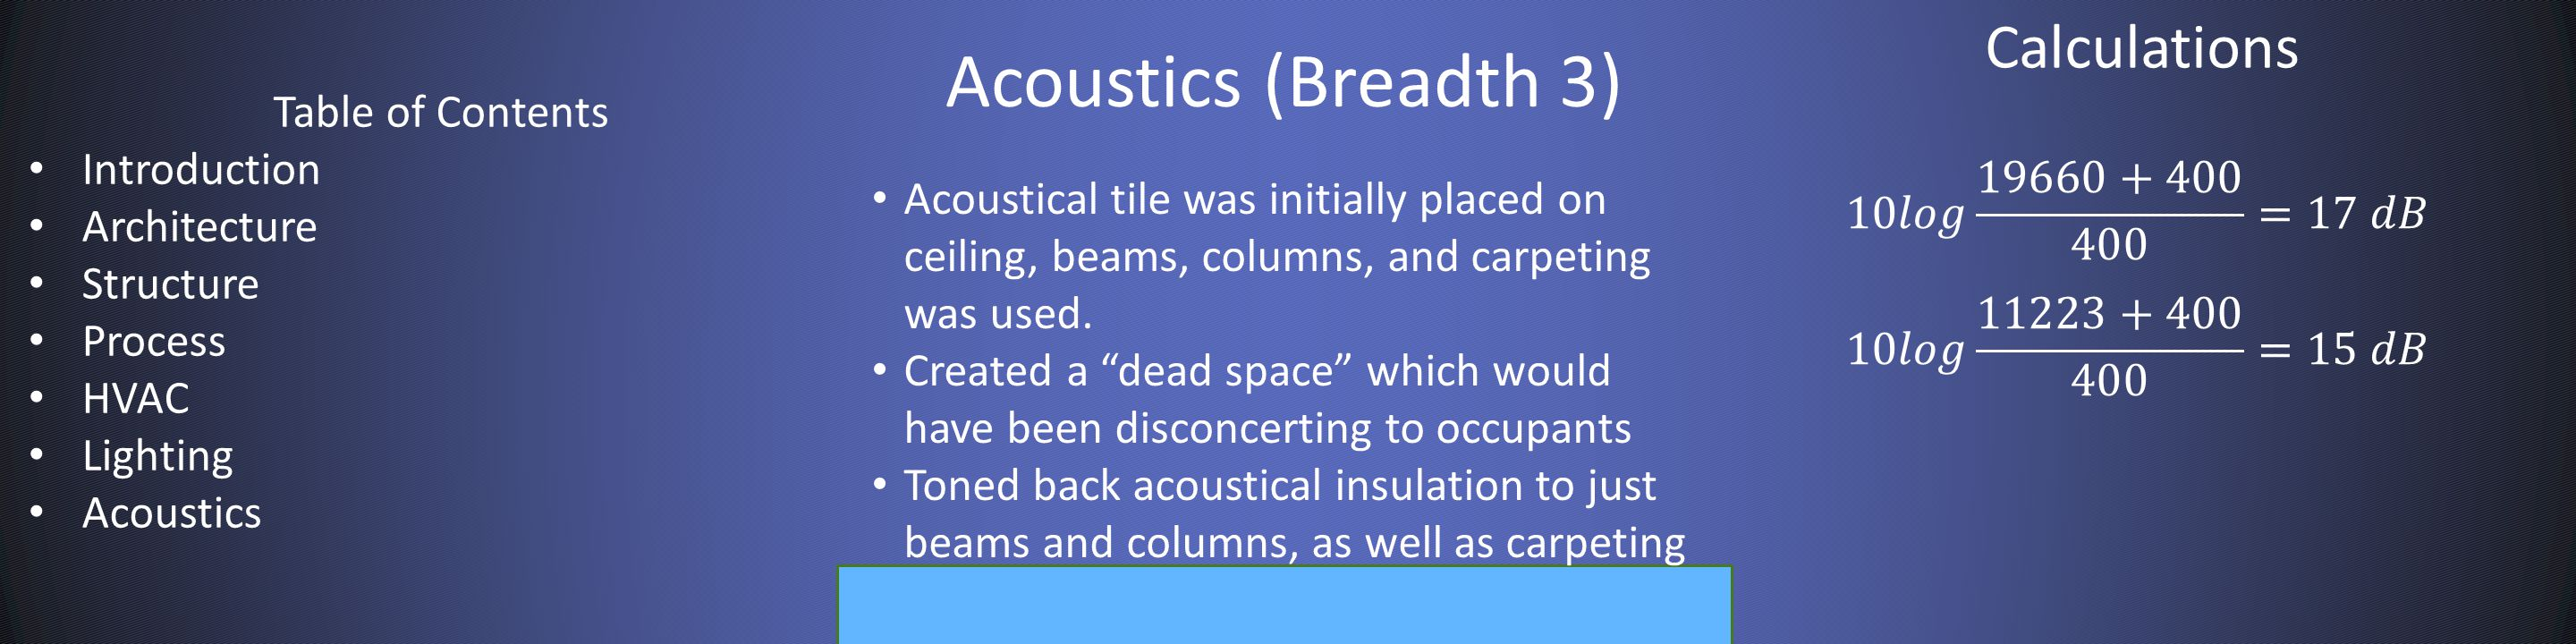 Acoustics (Breadth 3) Calculations Acoustical tile was initially placed on ceiling, beams, columns, and carpeting was used.